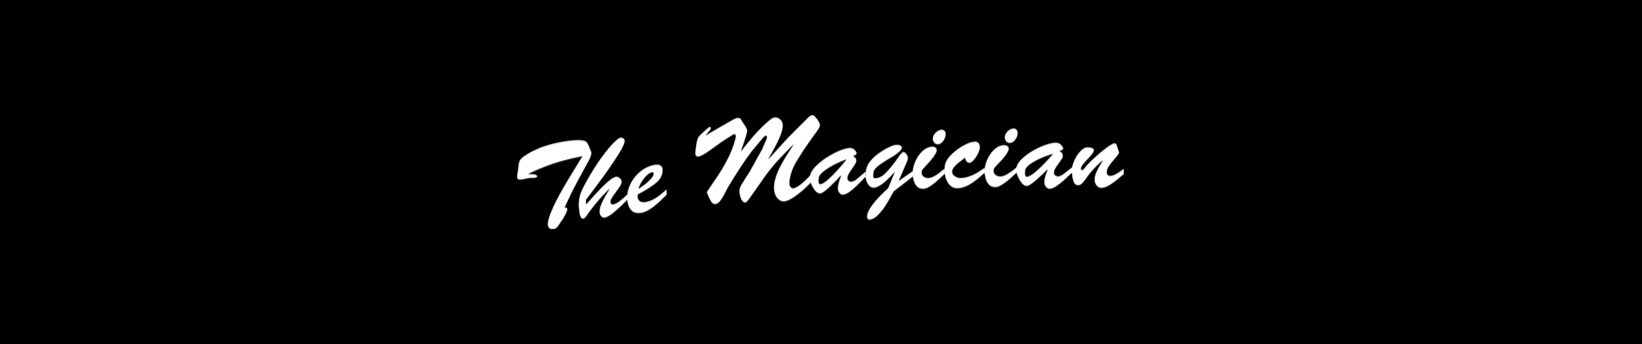 The Magician   Free Listening on SoundCloud